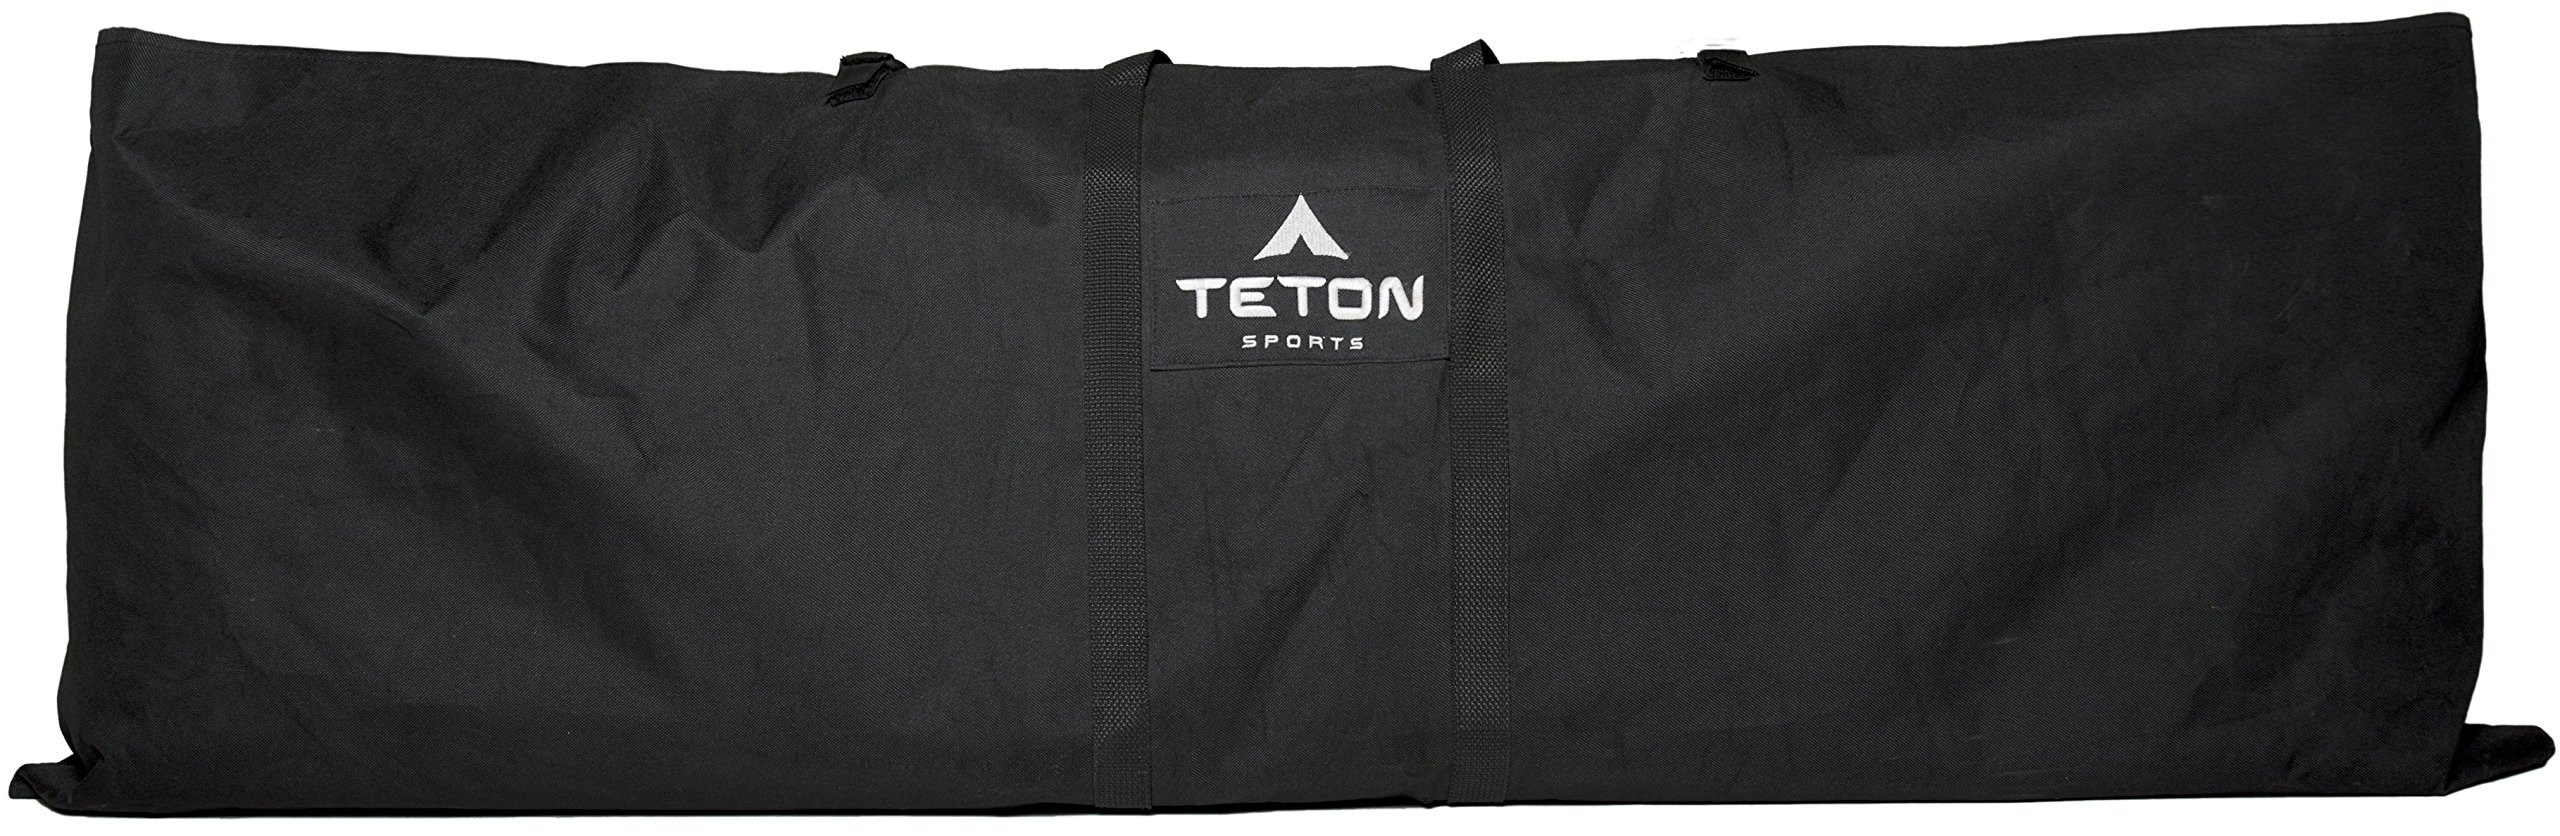 TETON Sports Outfitter XXL Camping Cot; Perfect for Base Camp and Hunting; Cots for Adults; Free Storage Bag Included (Pack of 2)